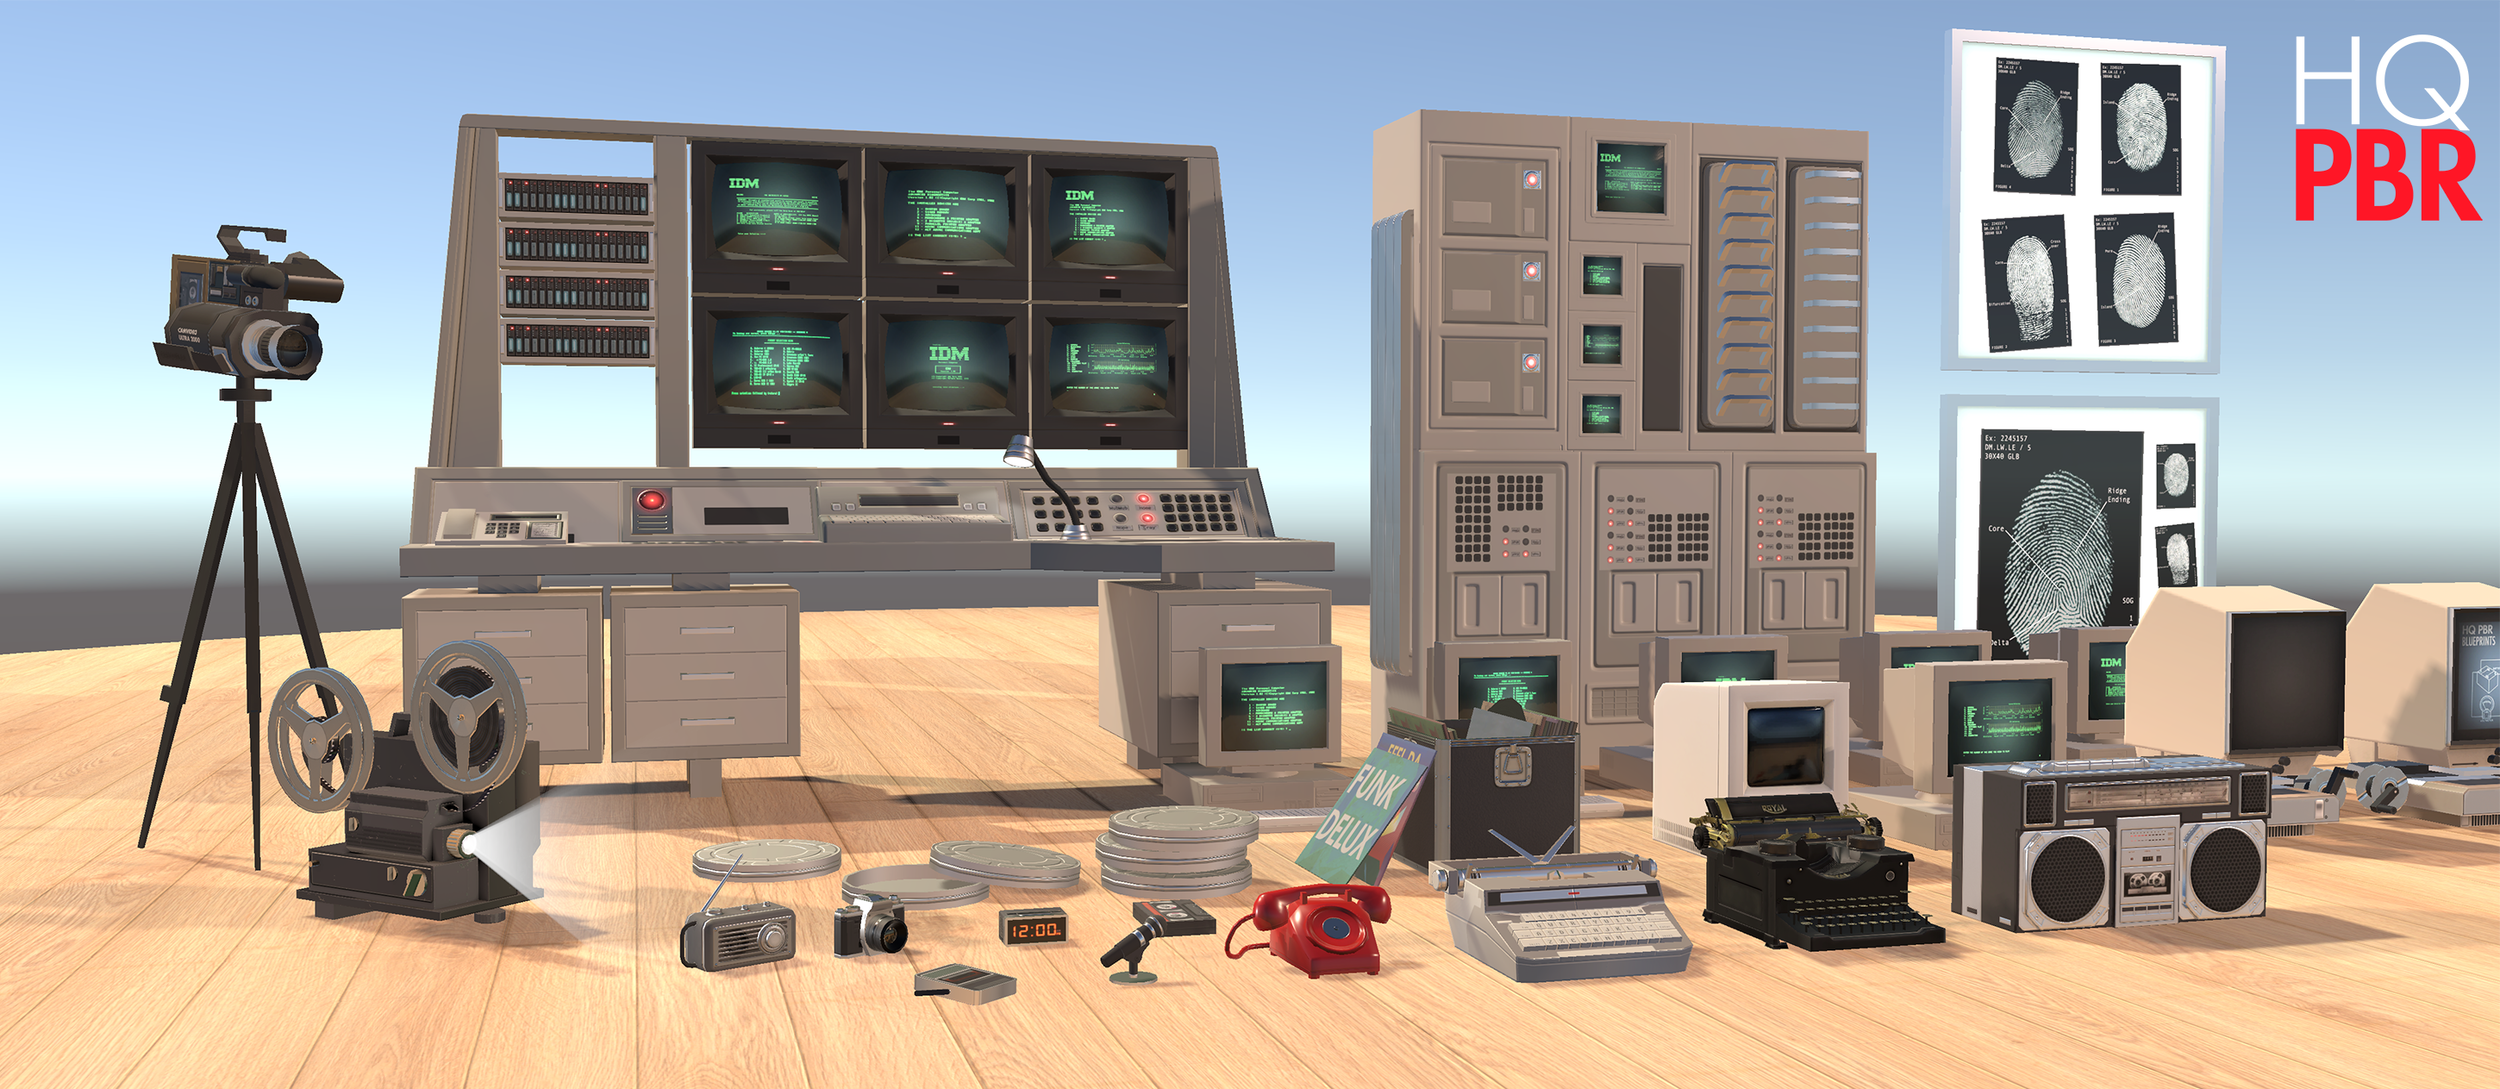 HQPBRTechnologyPack_HiResOverview.png